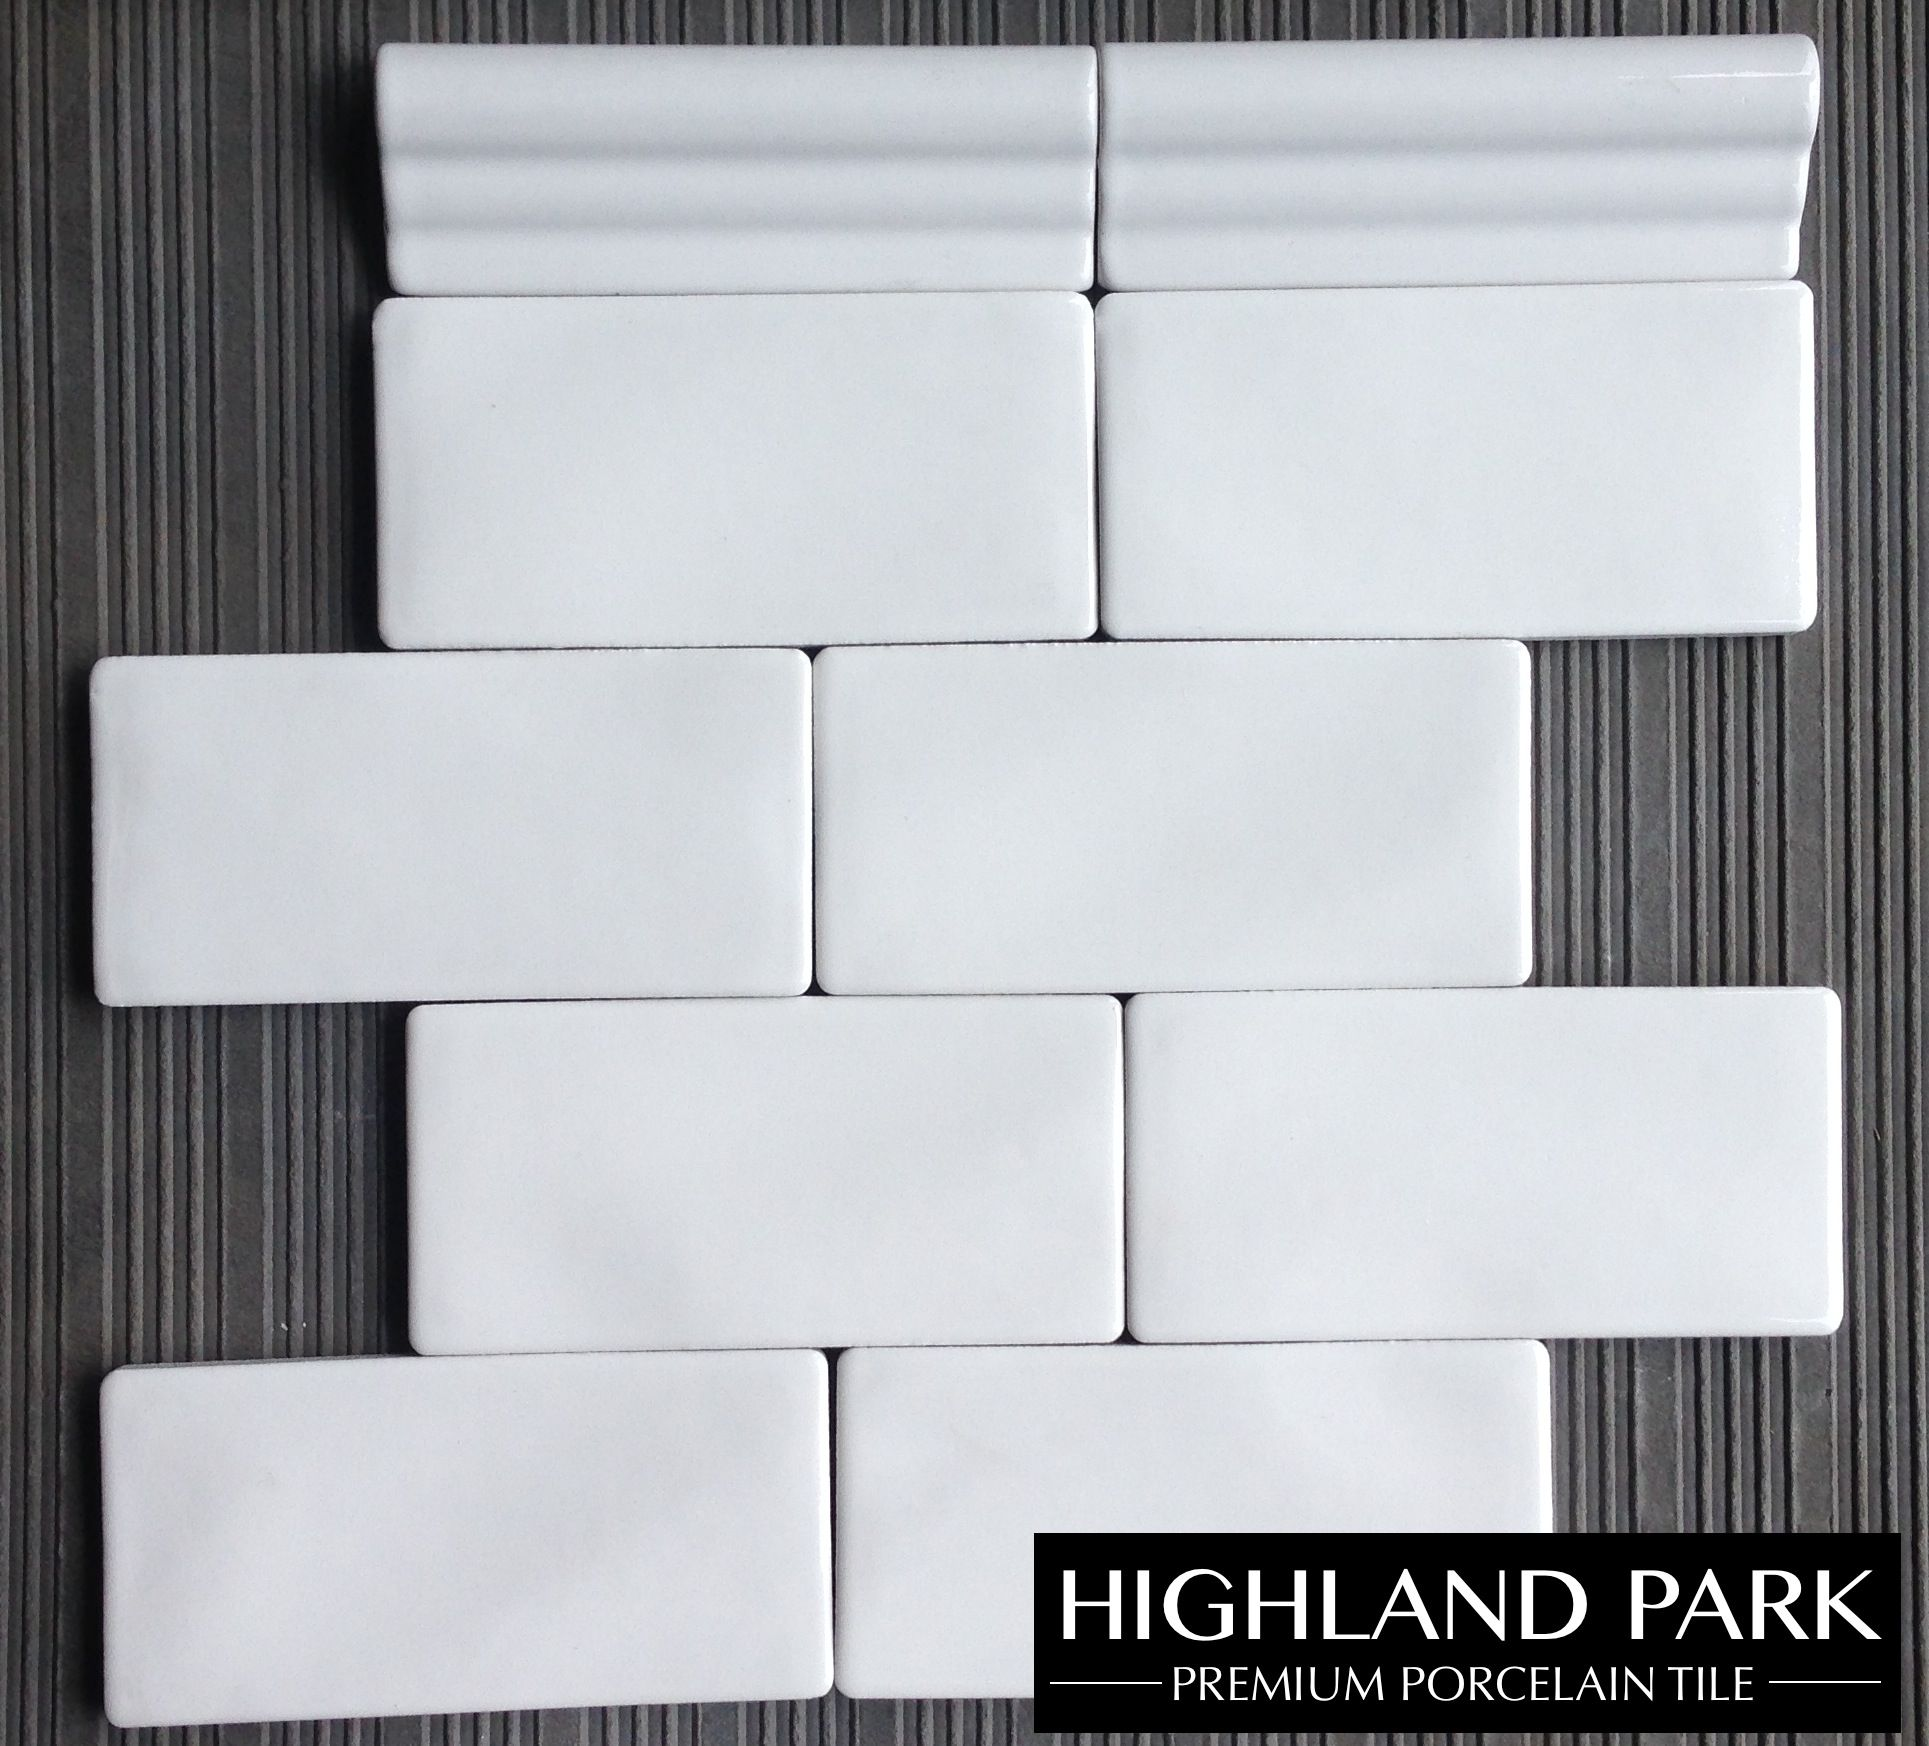 Premium handcrafted porcelain 3x6 subway tile whisper white premium handcrafted porcelain 3x6 subway tile whisper white available online 850 a square foot dailygadgetfo Image collections